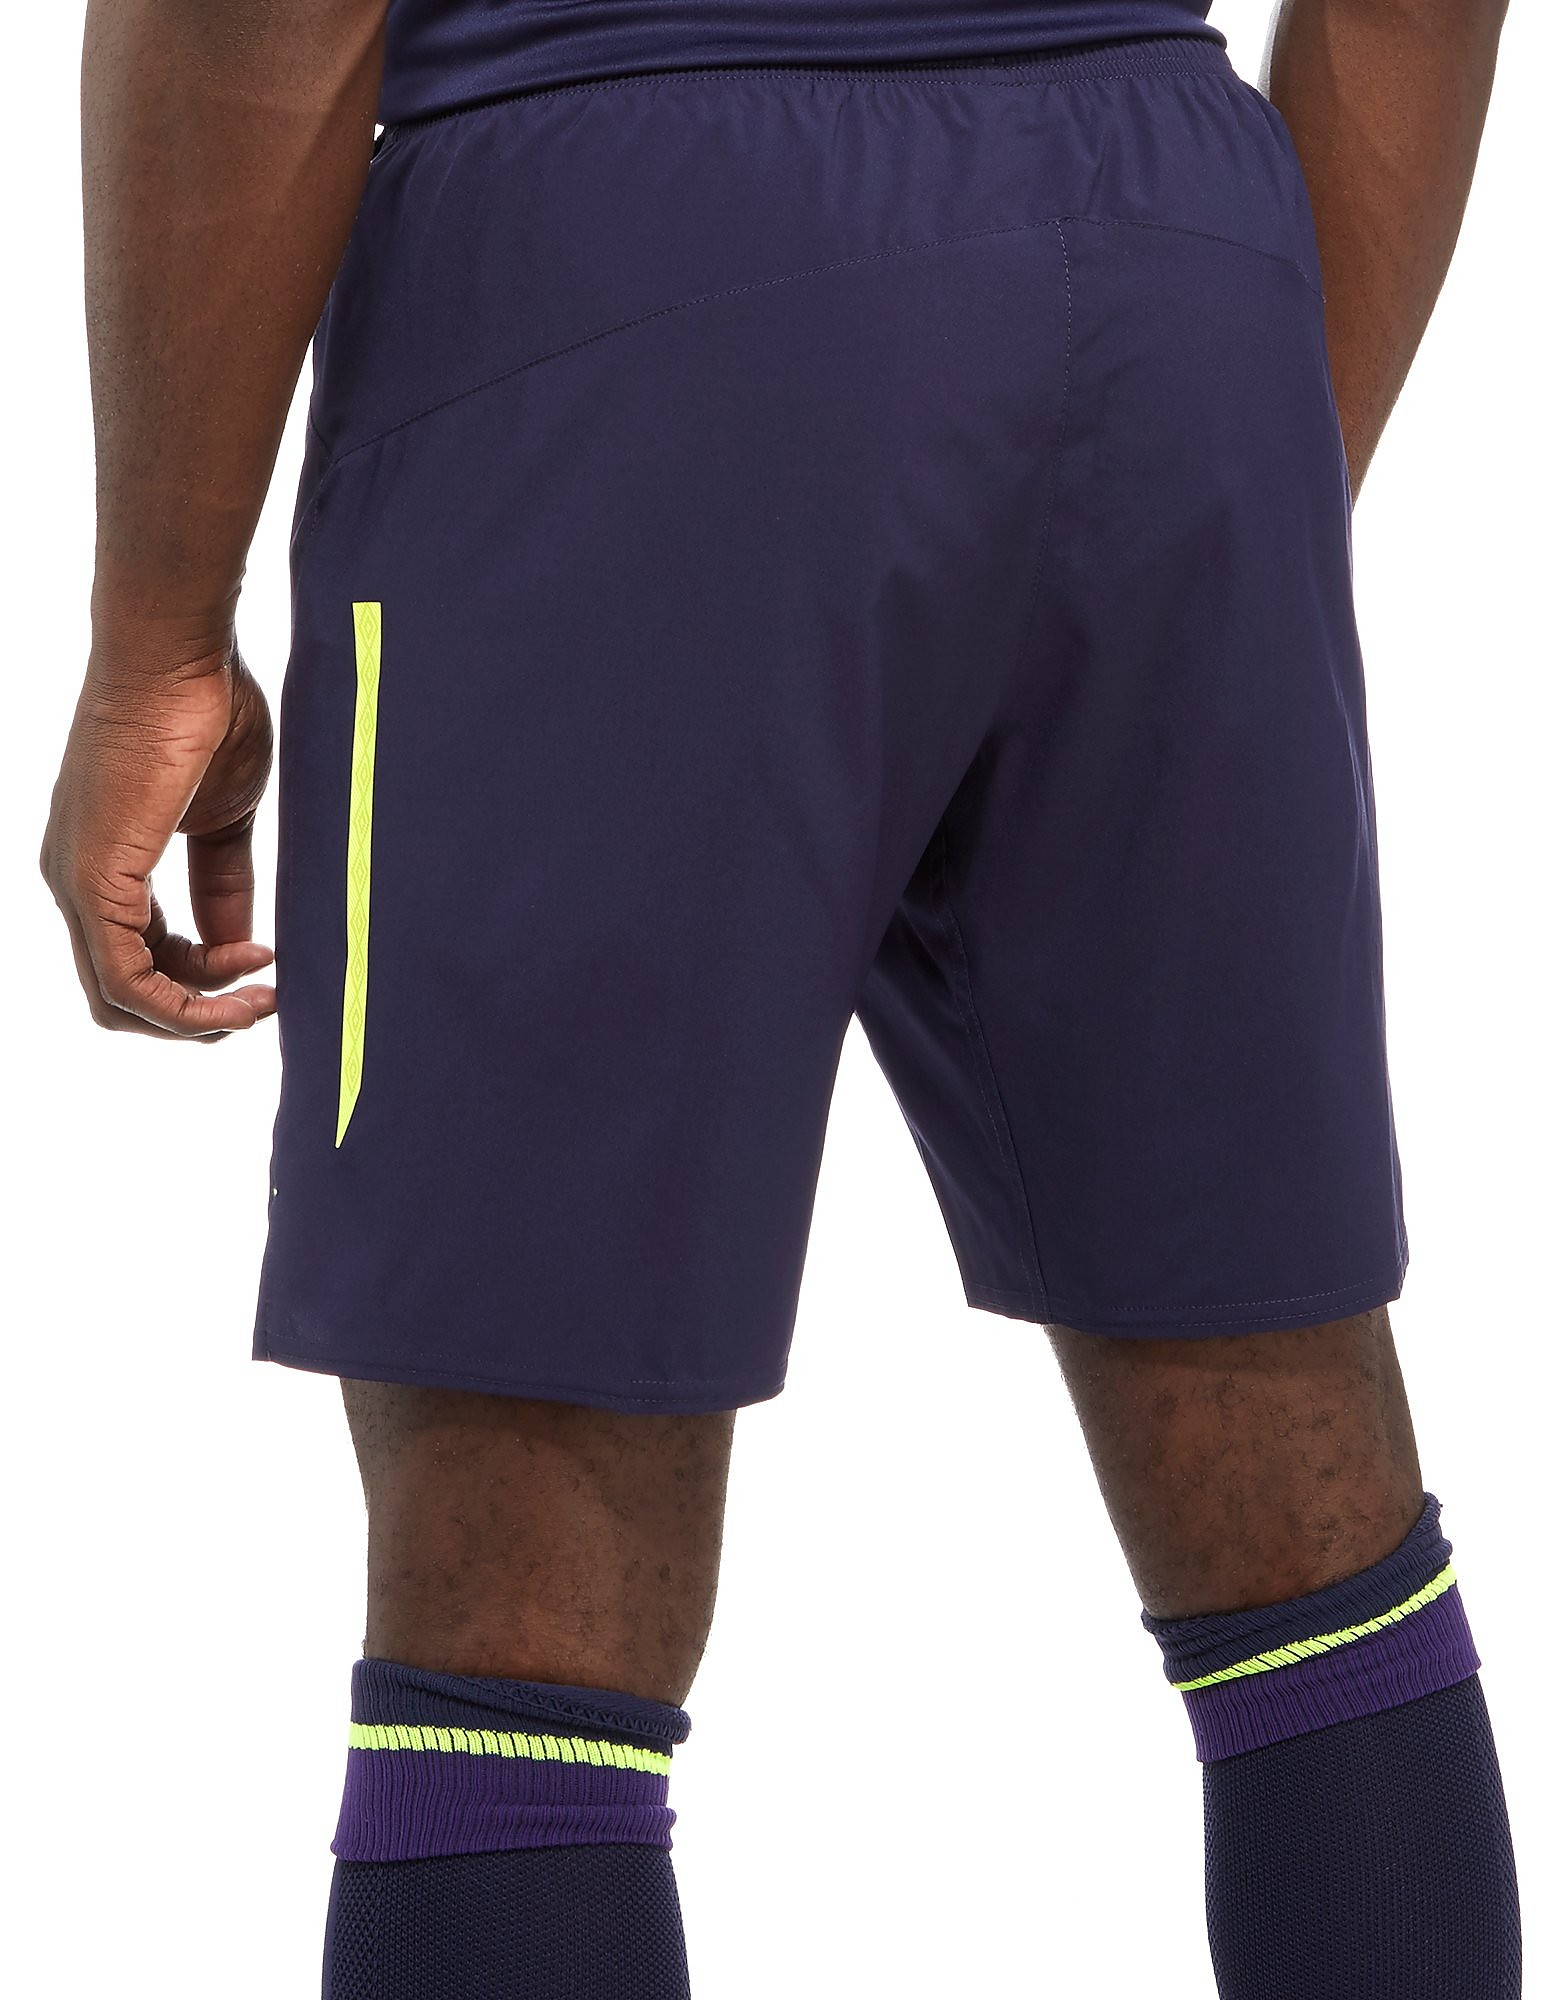 Umbro Everton FC 2017/18 Third Shorts